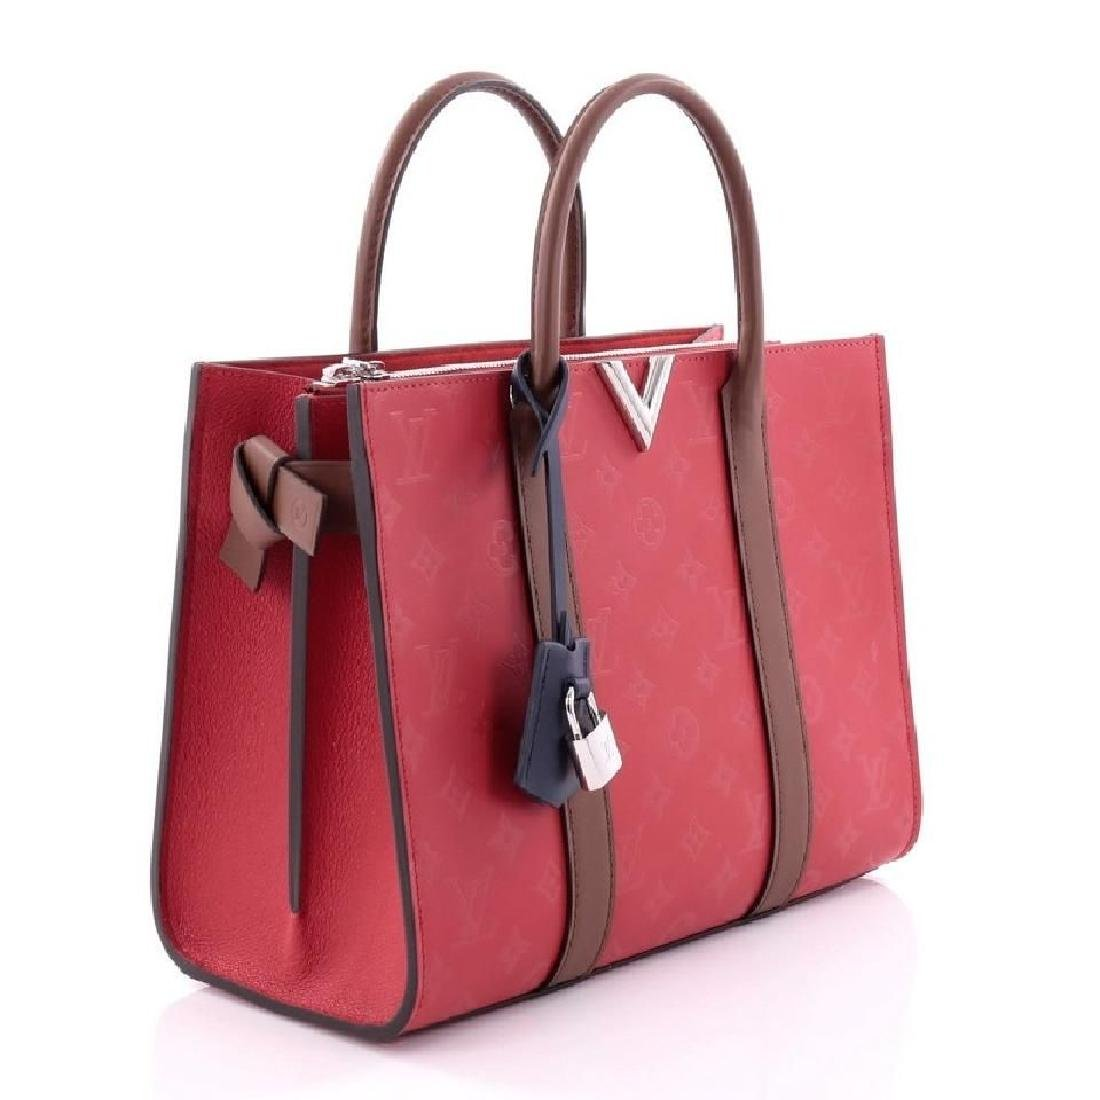 Authentic Louis Vuitton Very Tote Red Monogram Leather - 2